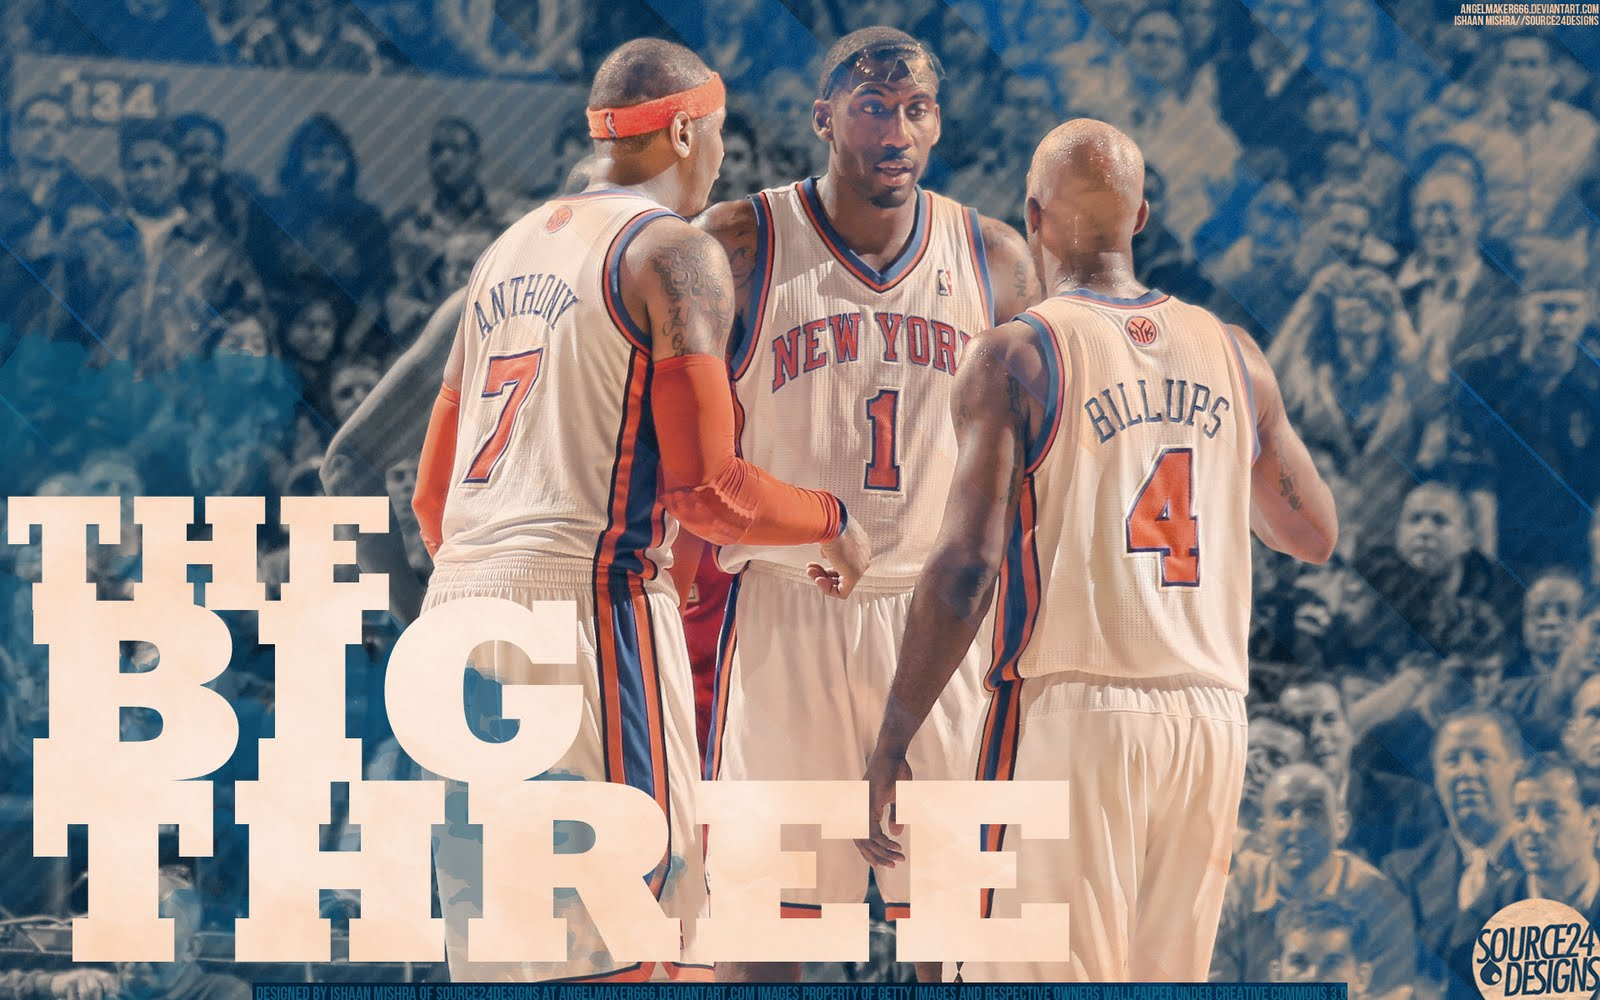 http://1.bp.blogspot.com/-whBDaD3z5nI/TjANVEO2P-I/AAAAAAAAHxo/zdr9GHoJ_TE/s1600/Melo-Stat-Billups-Knicks-Widescreen-Wallpaper-BasketWallpapers.com-.jpg